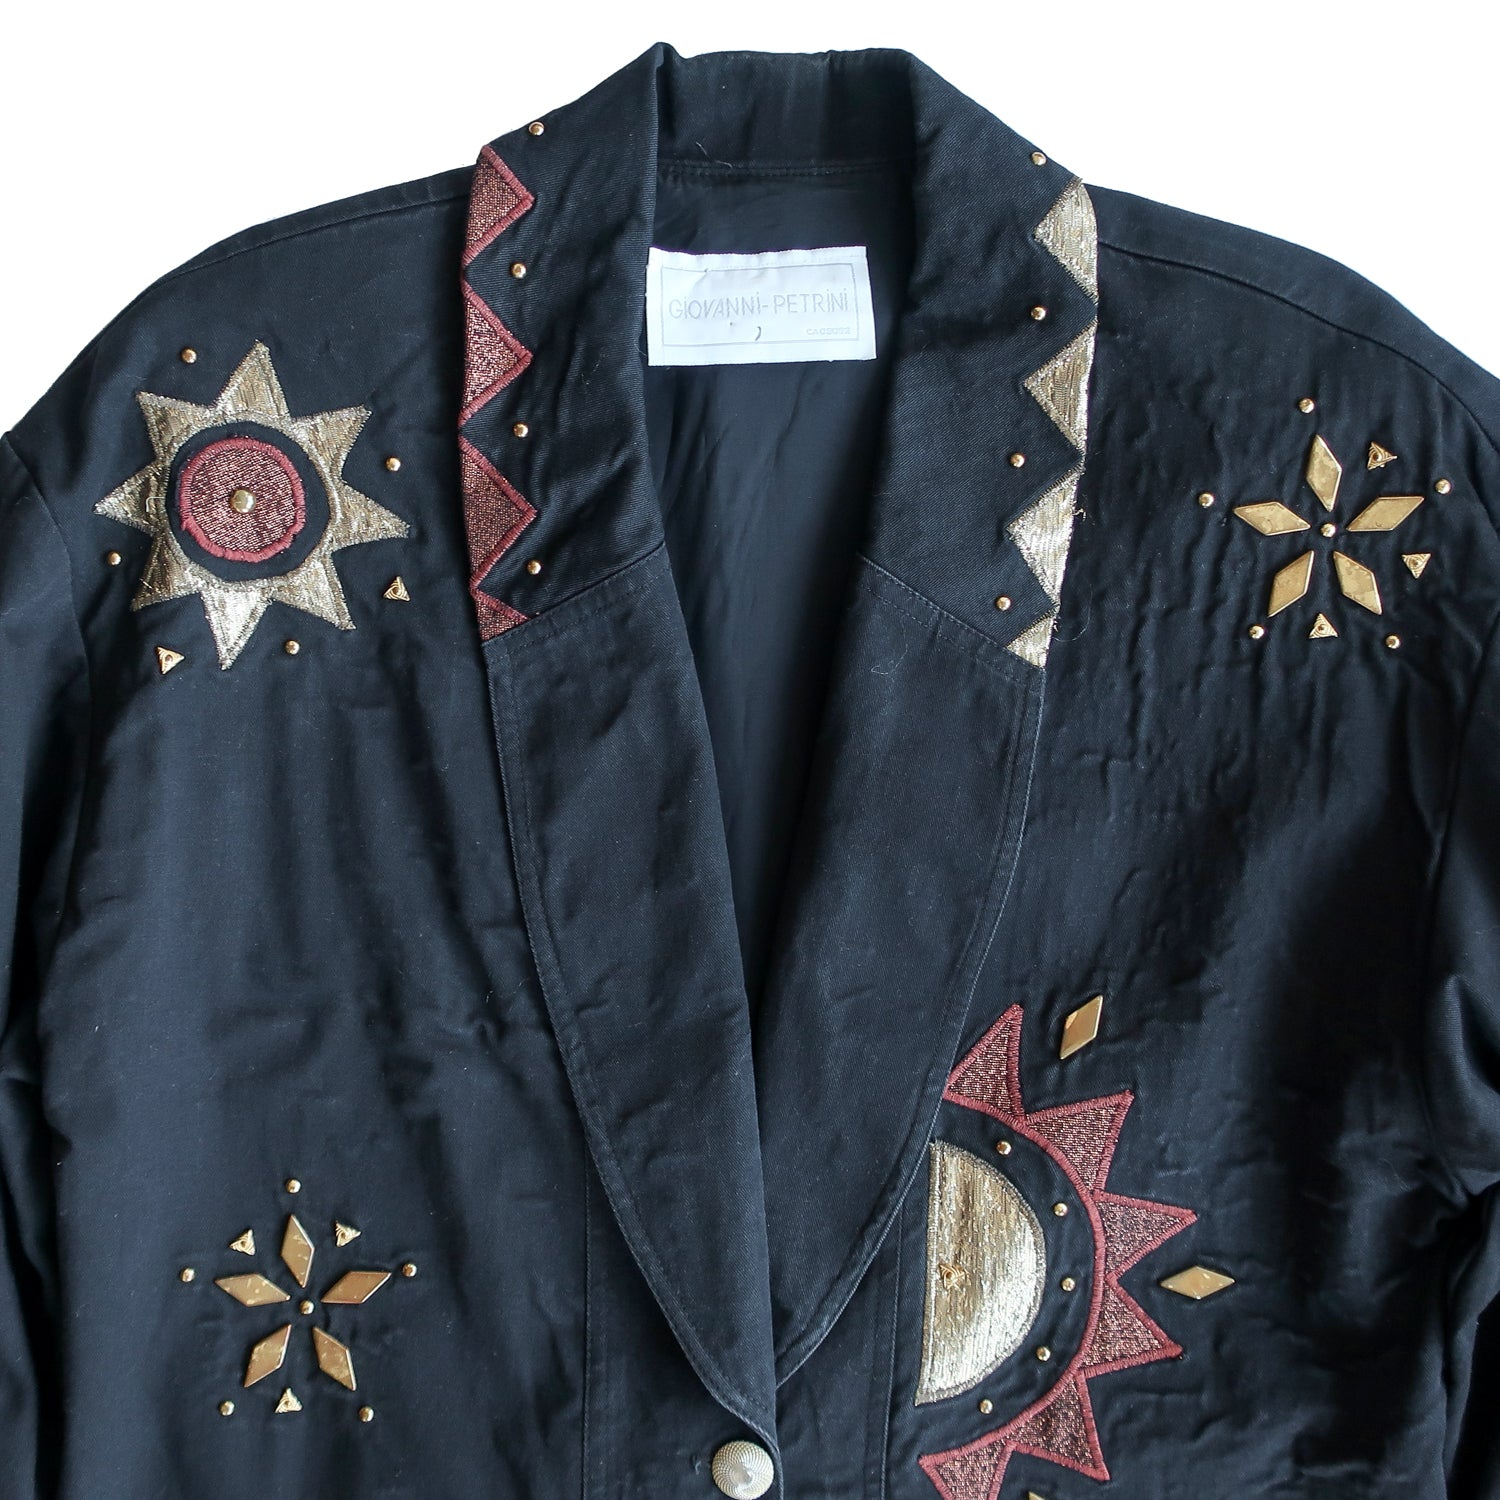 Second Room Vintage Clothing. Vintage black cotton blazer with amazing copper and gold metallic thread designs, and round and triangle metal studs. Fully lined with sewn in shoulder pads, two front pockets, and two button closure. Free North American shipping on all orders.